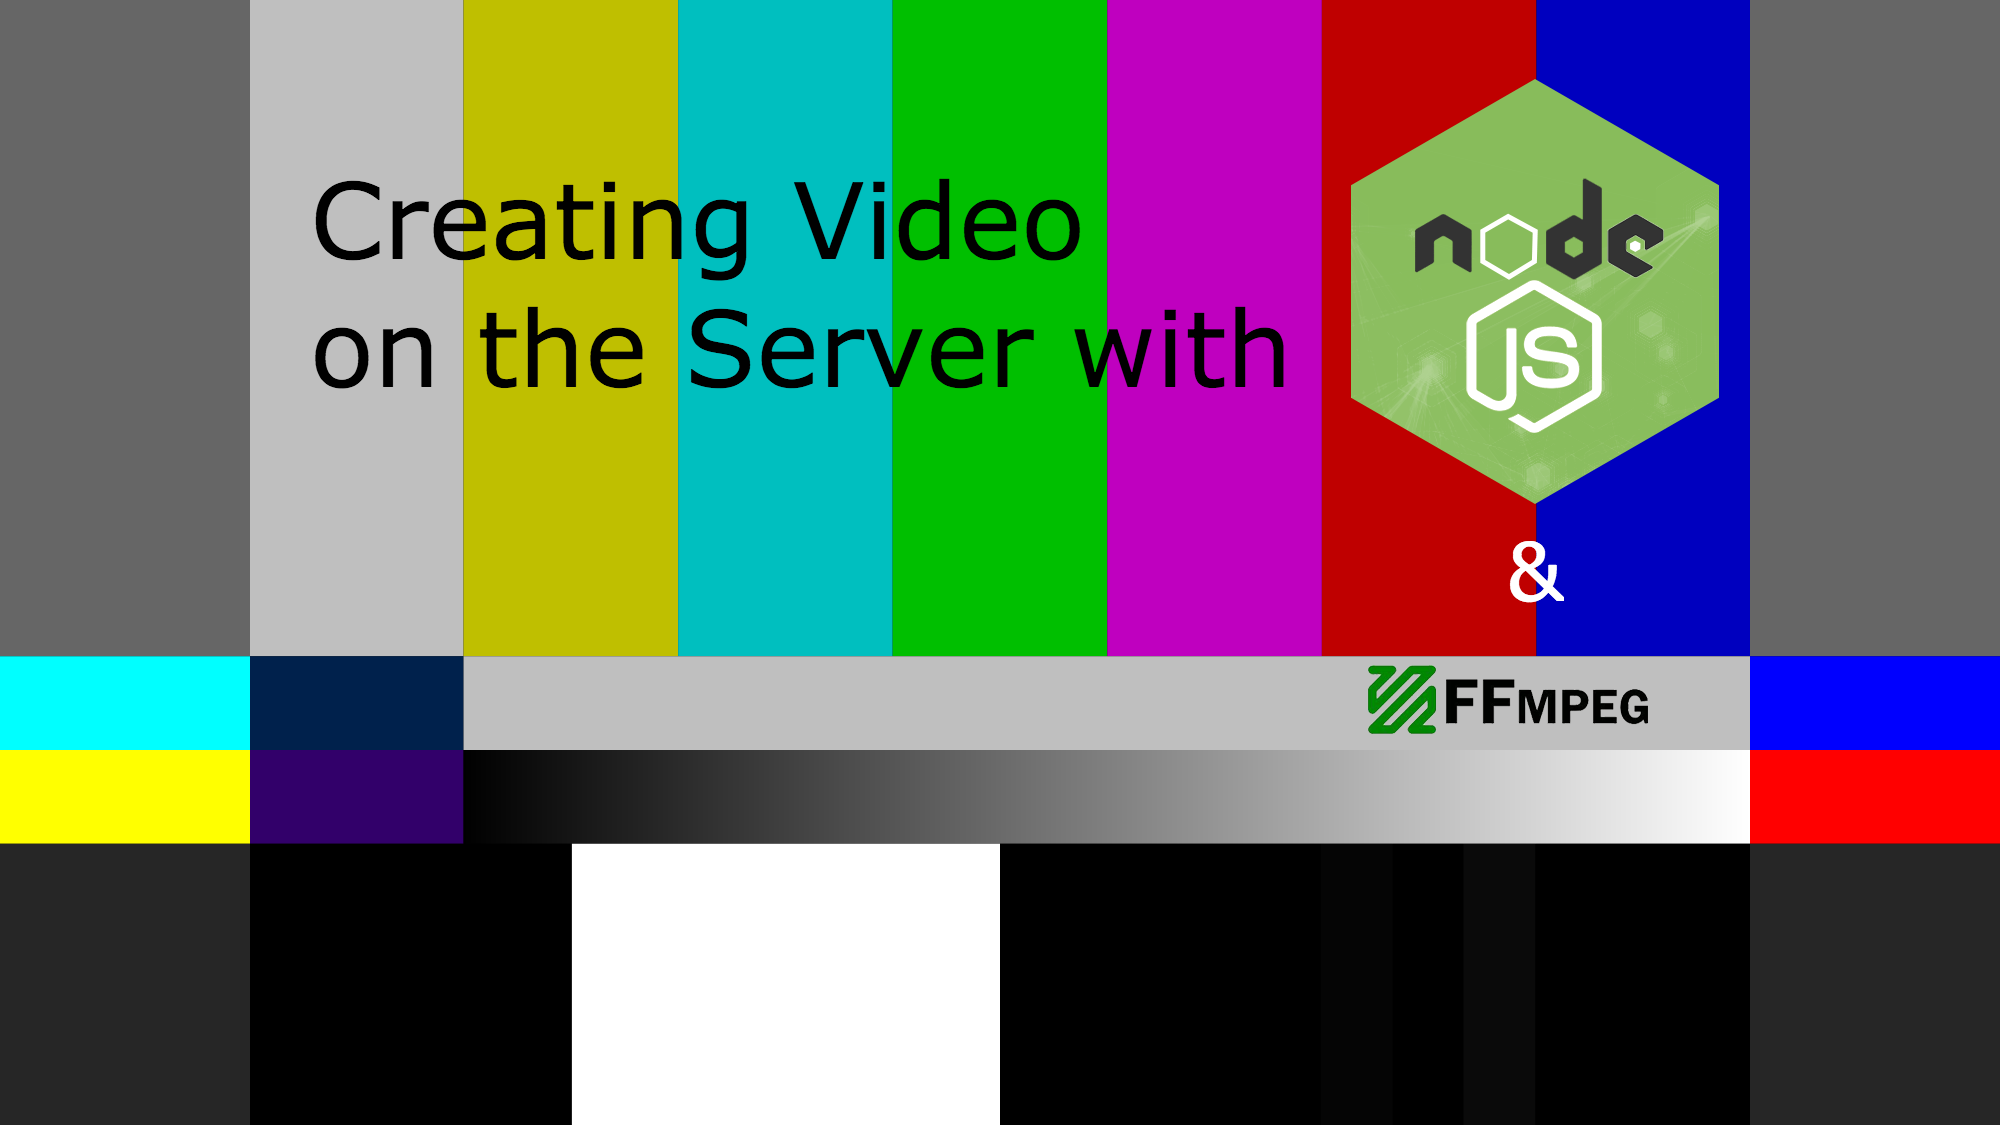 Creating Video on the Server in Node js - Cliff Hall